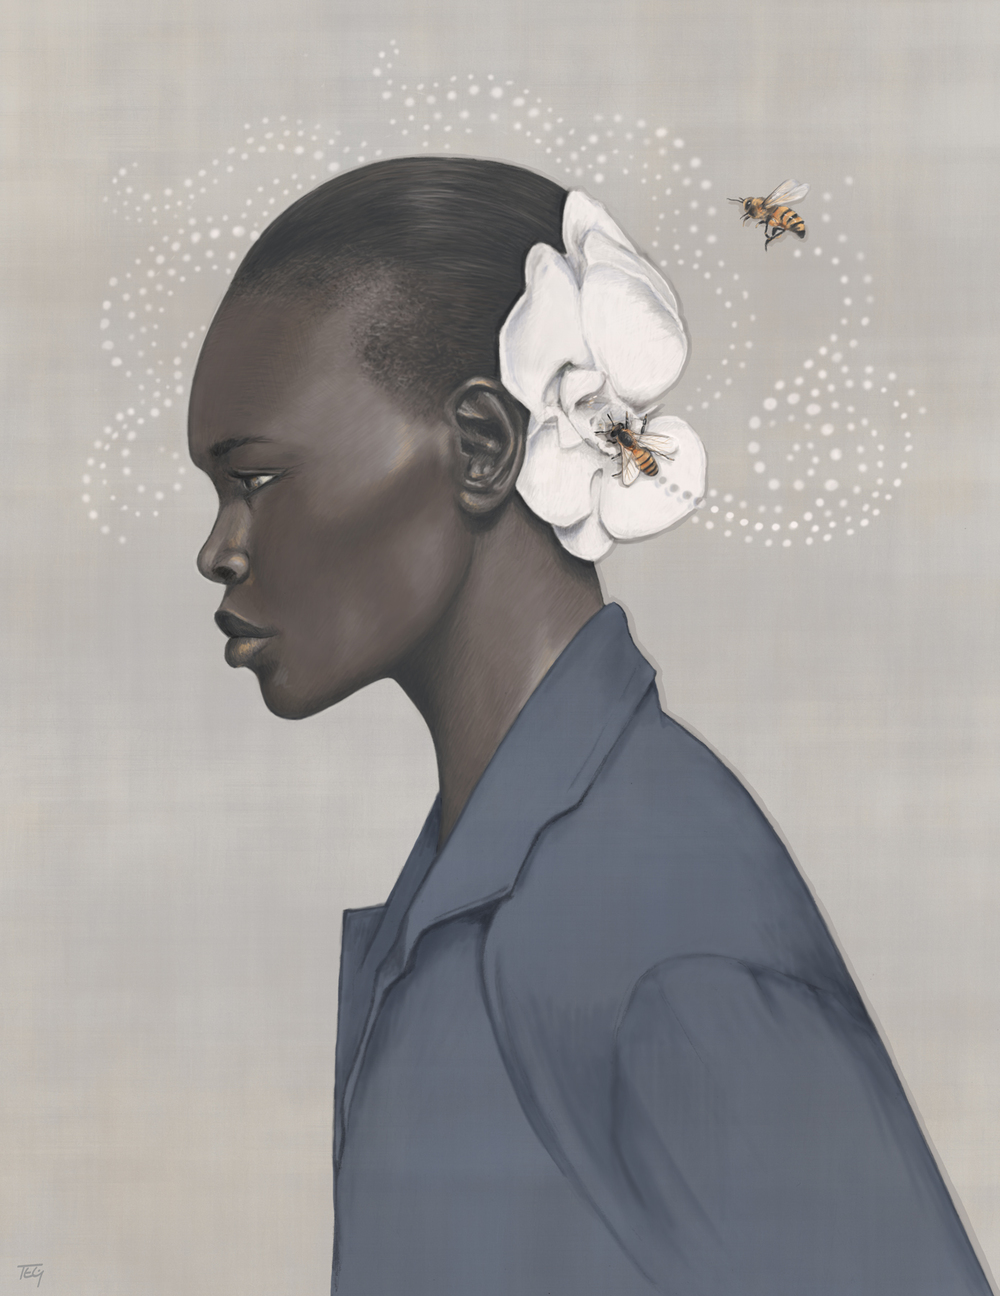 Queen Bee  - graphite & digital painting, 2015